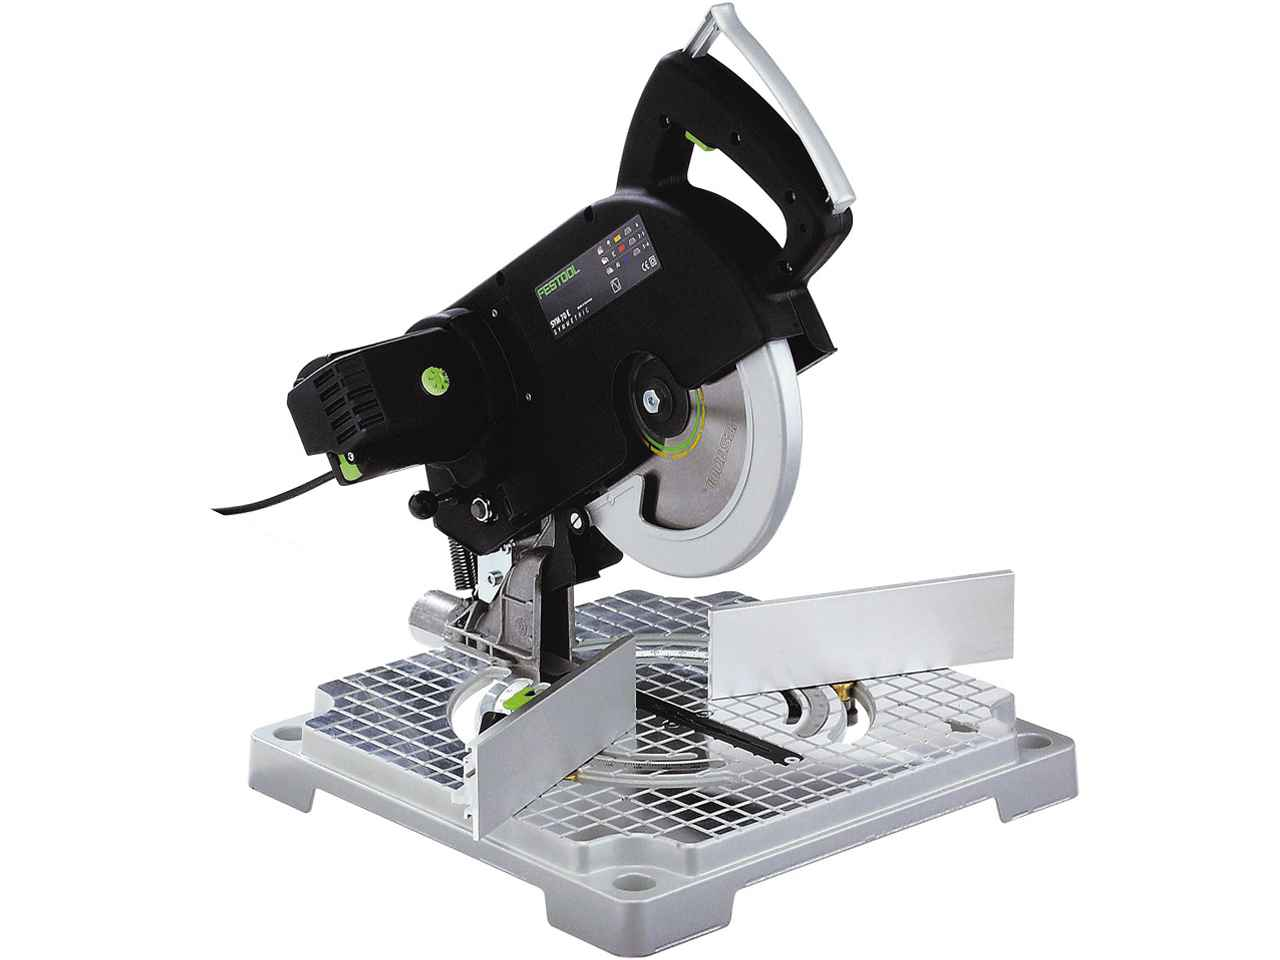 festool 561256 sym 70 e 240v kapp und gehrungss ge ebay. Black Bedroom Furniture Sets. Home Design Ideas